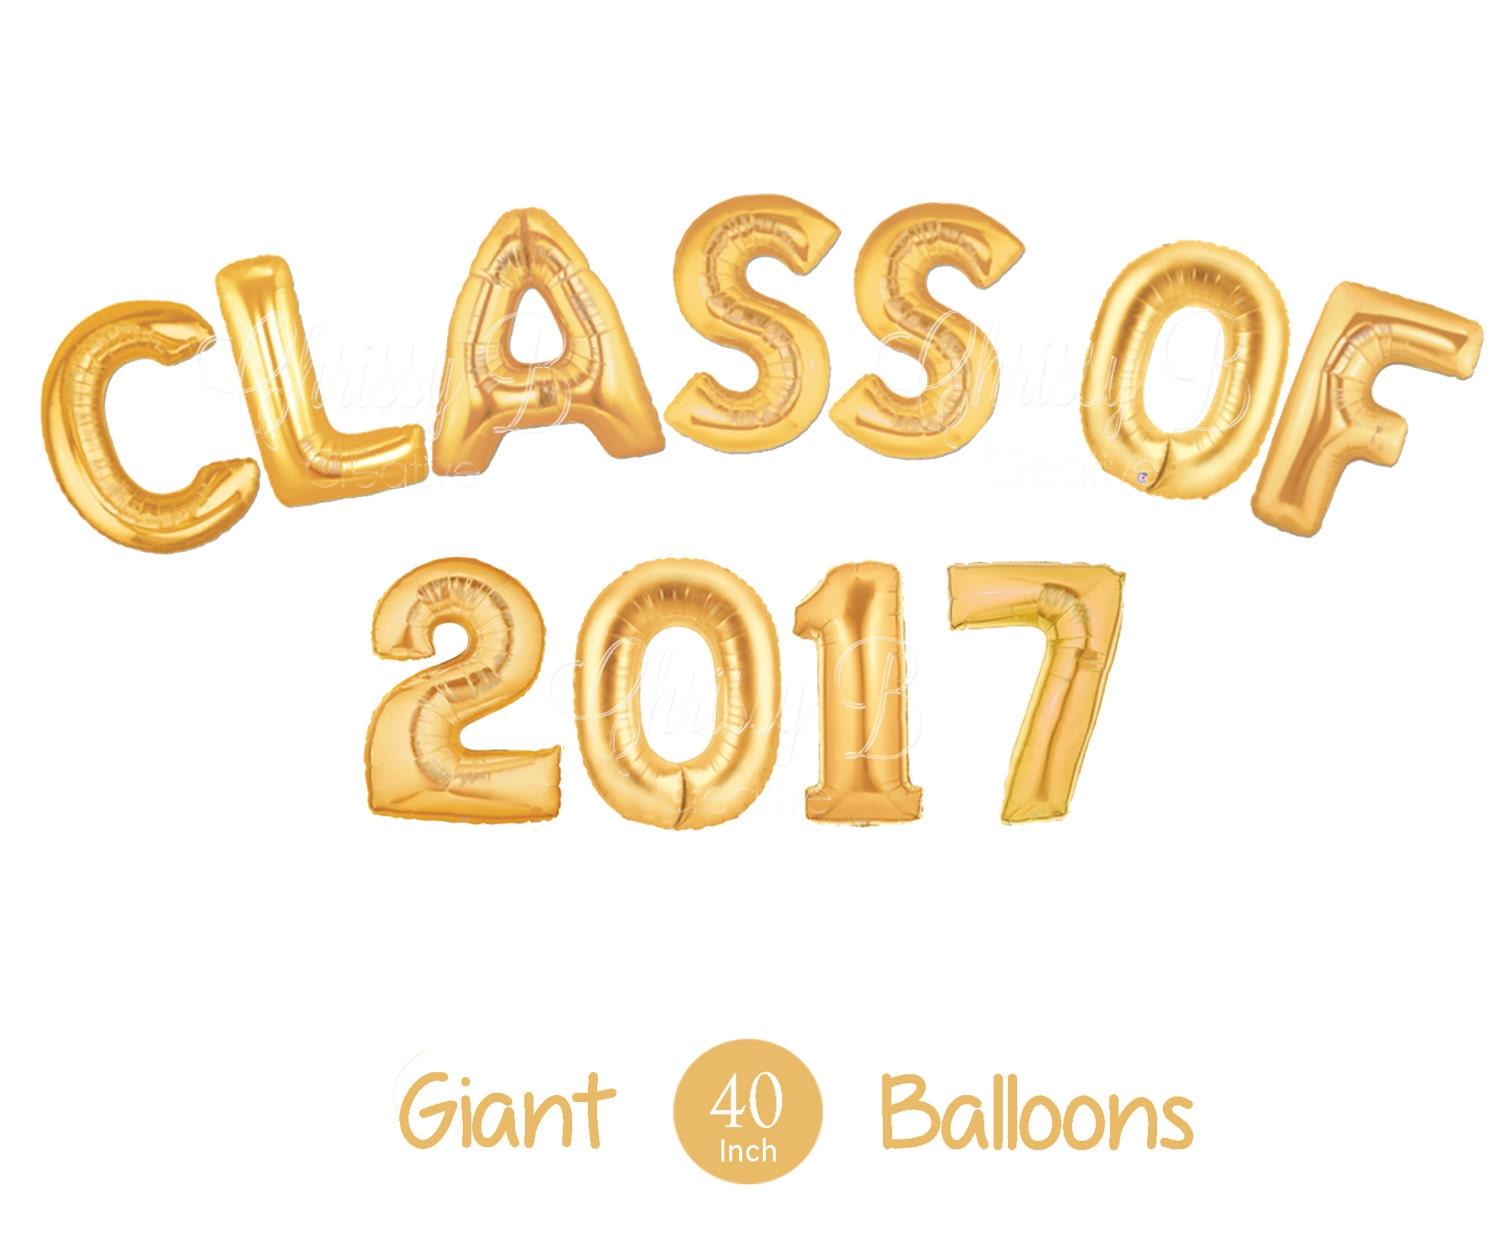 Giant CLASS OF 2017 Letter Balloons 40